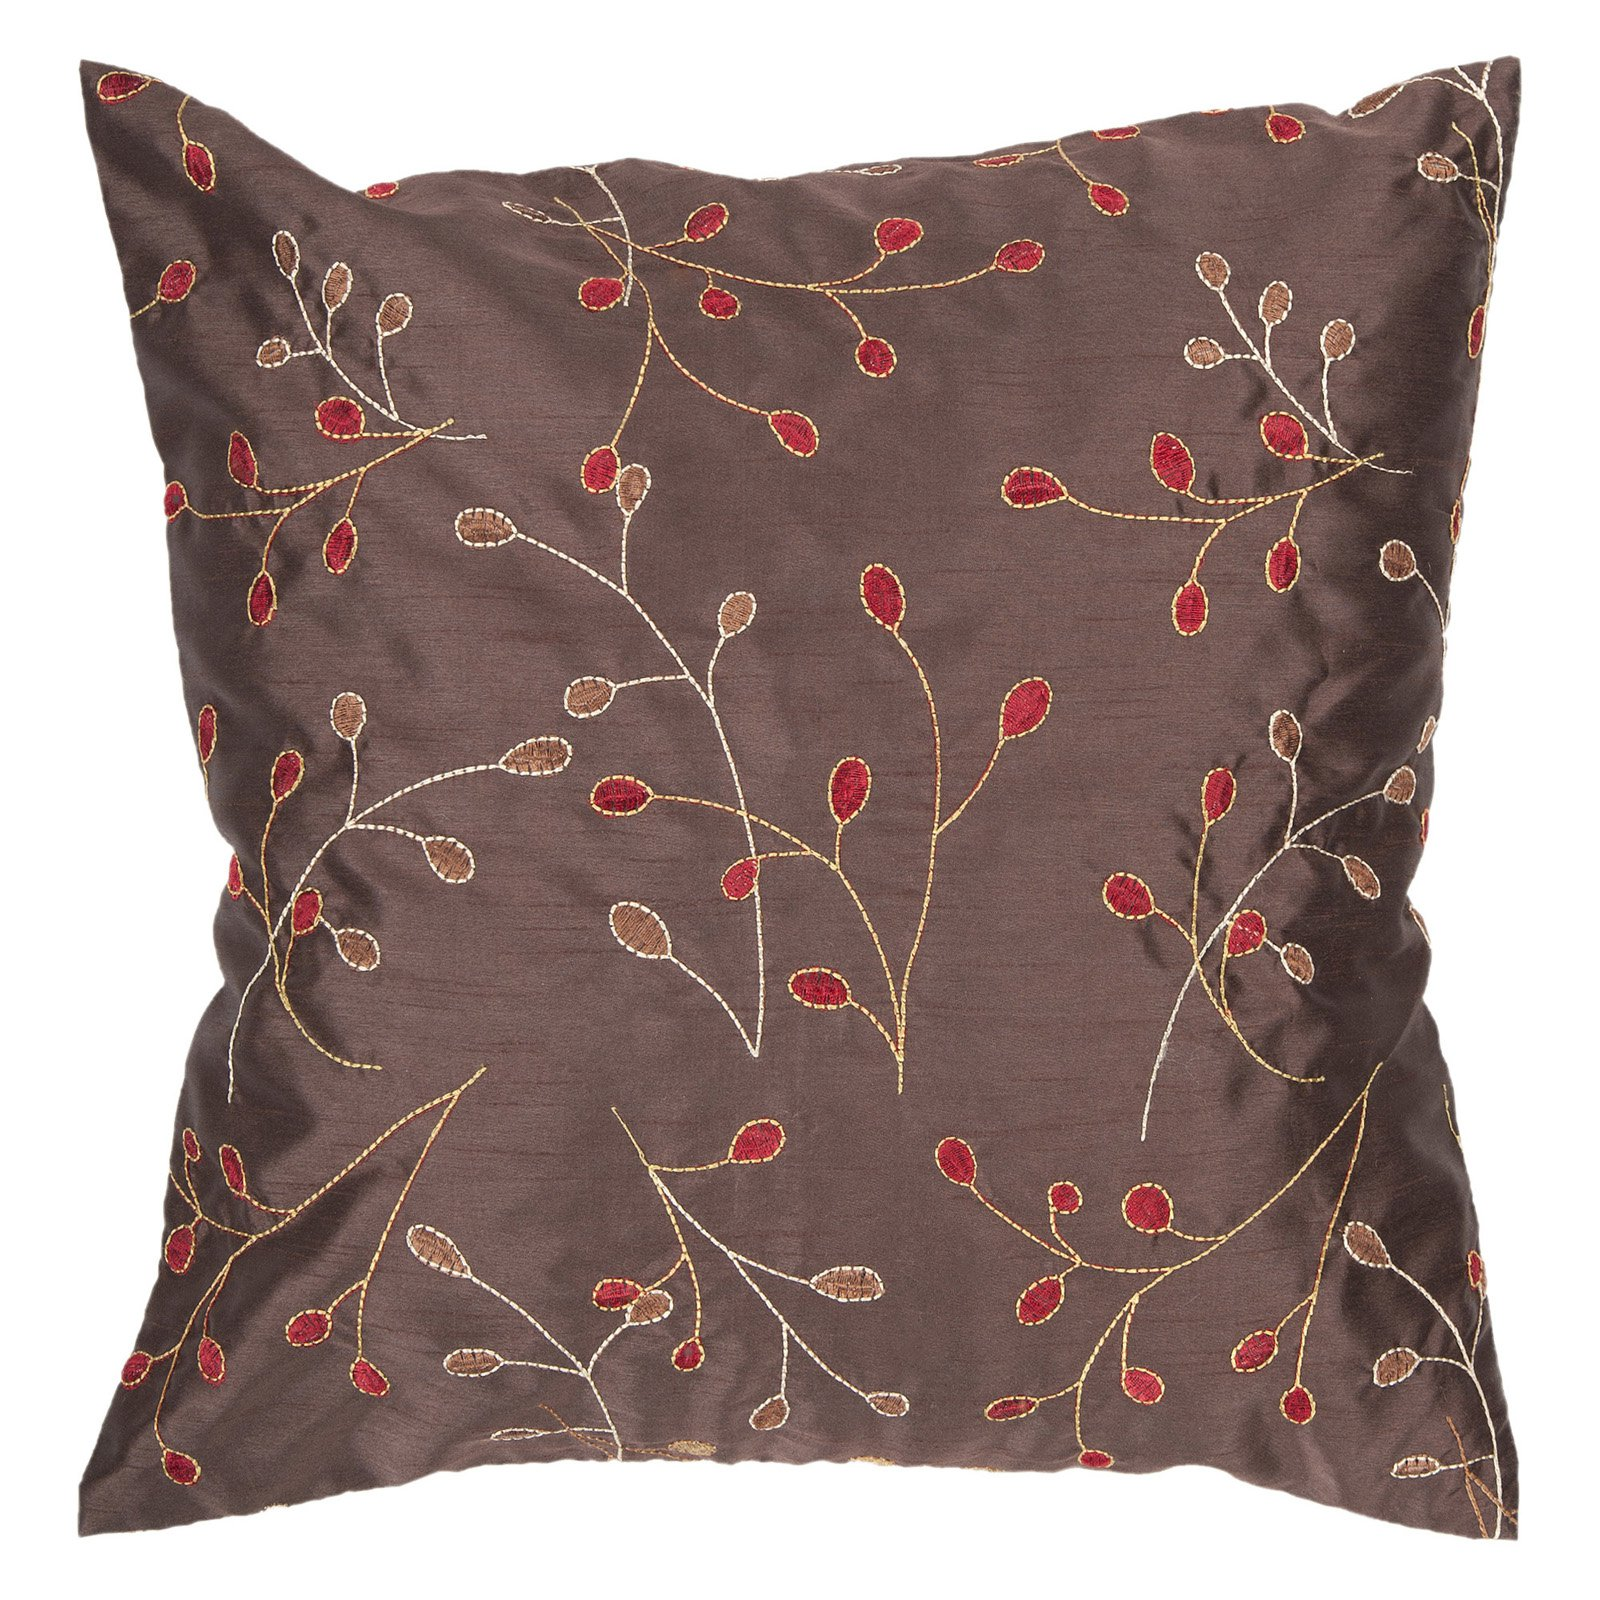 Surya China Vine Decorative Pillow - Chocolate